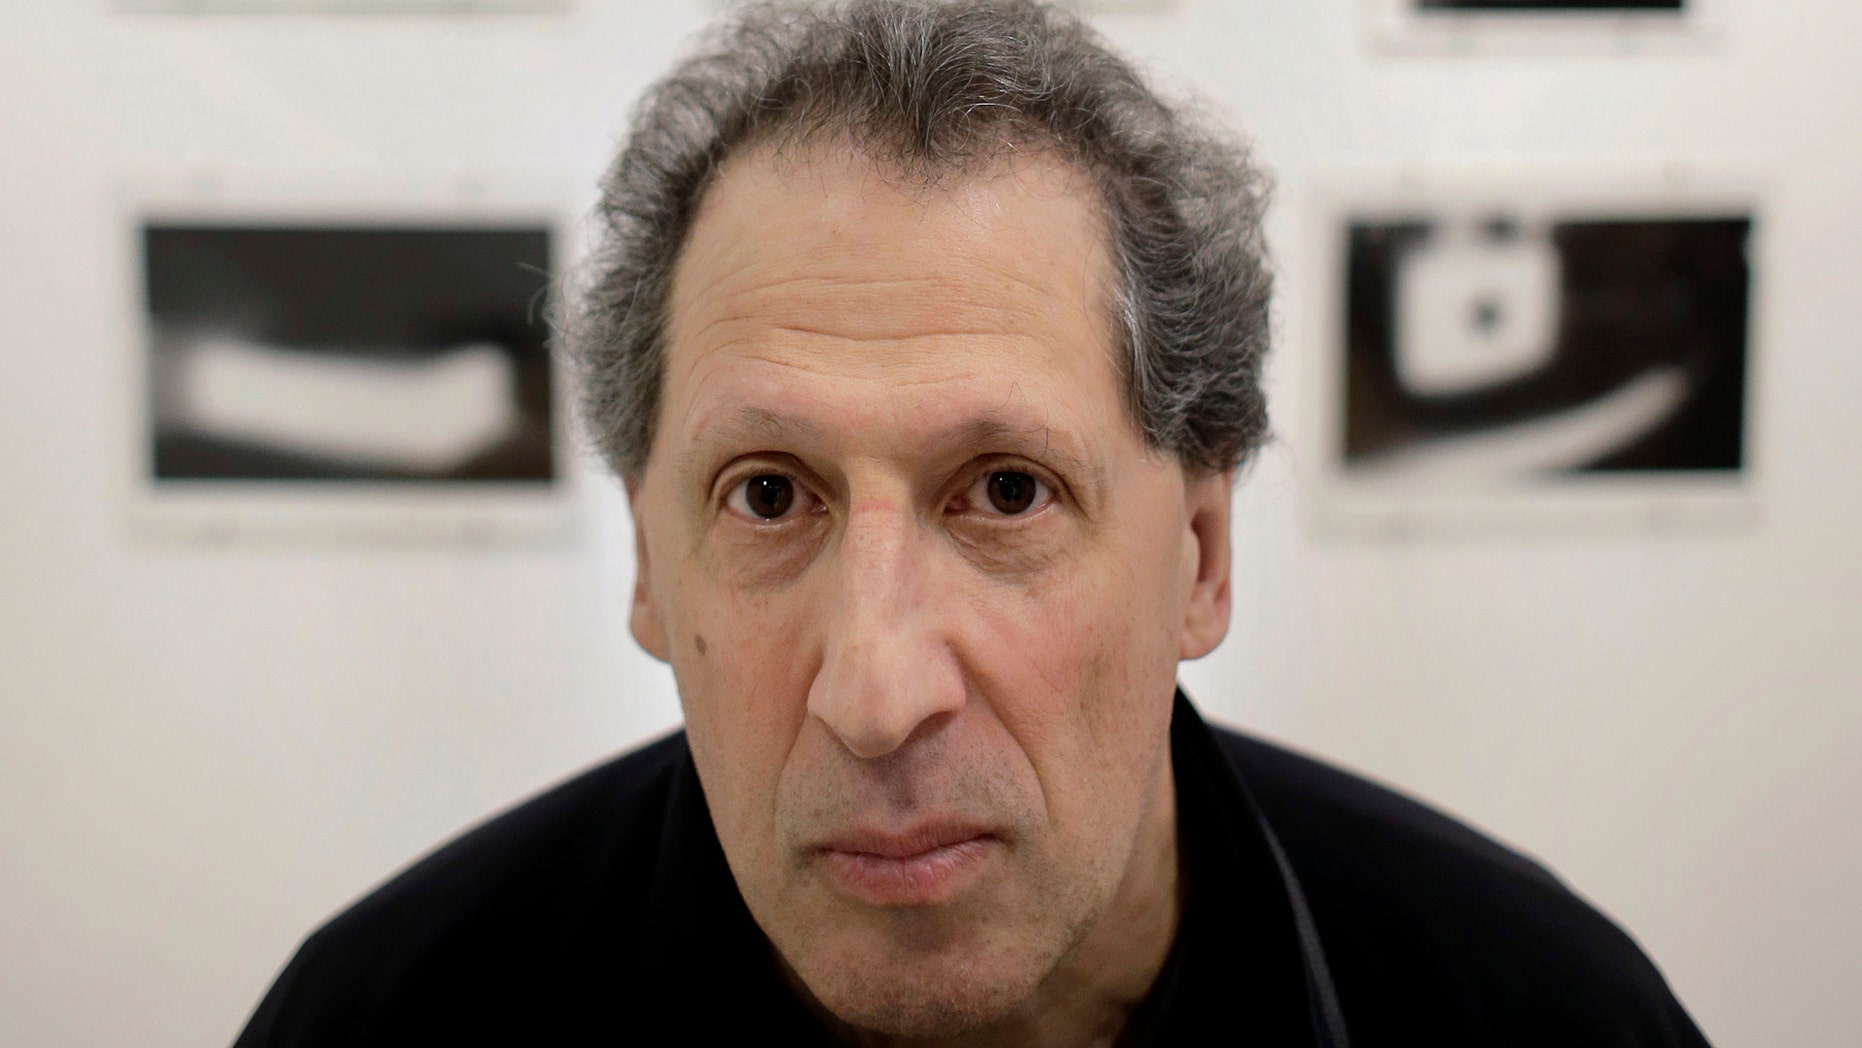 """In this Feb. 22, 2017 photo, photographer Karl Baden, of Cambridge, Mass., sits for a photo in front of an exhibit of his photographs from 1976 called """"Thermographs,"""" at the Miller Yezerski Gallery, in Boston. (AP Photo/Steven Senne)"""